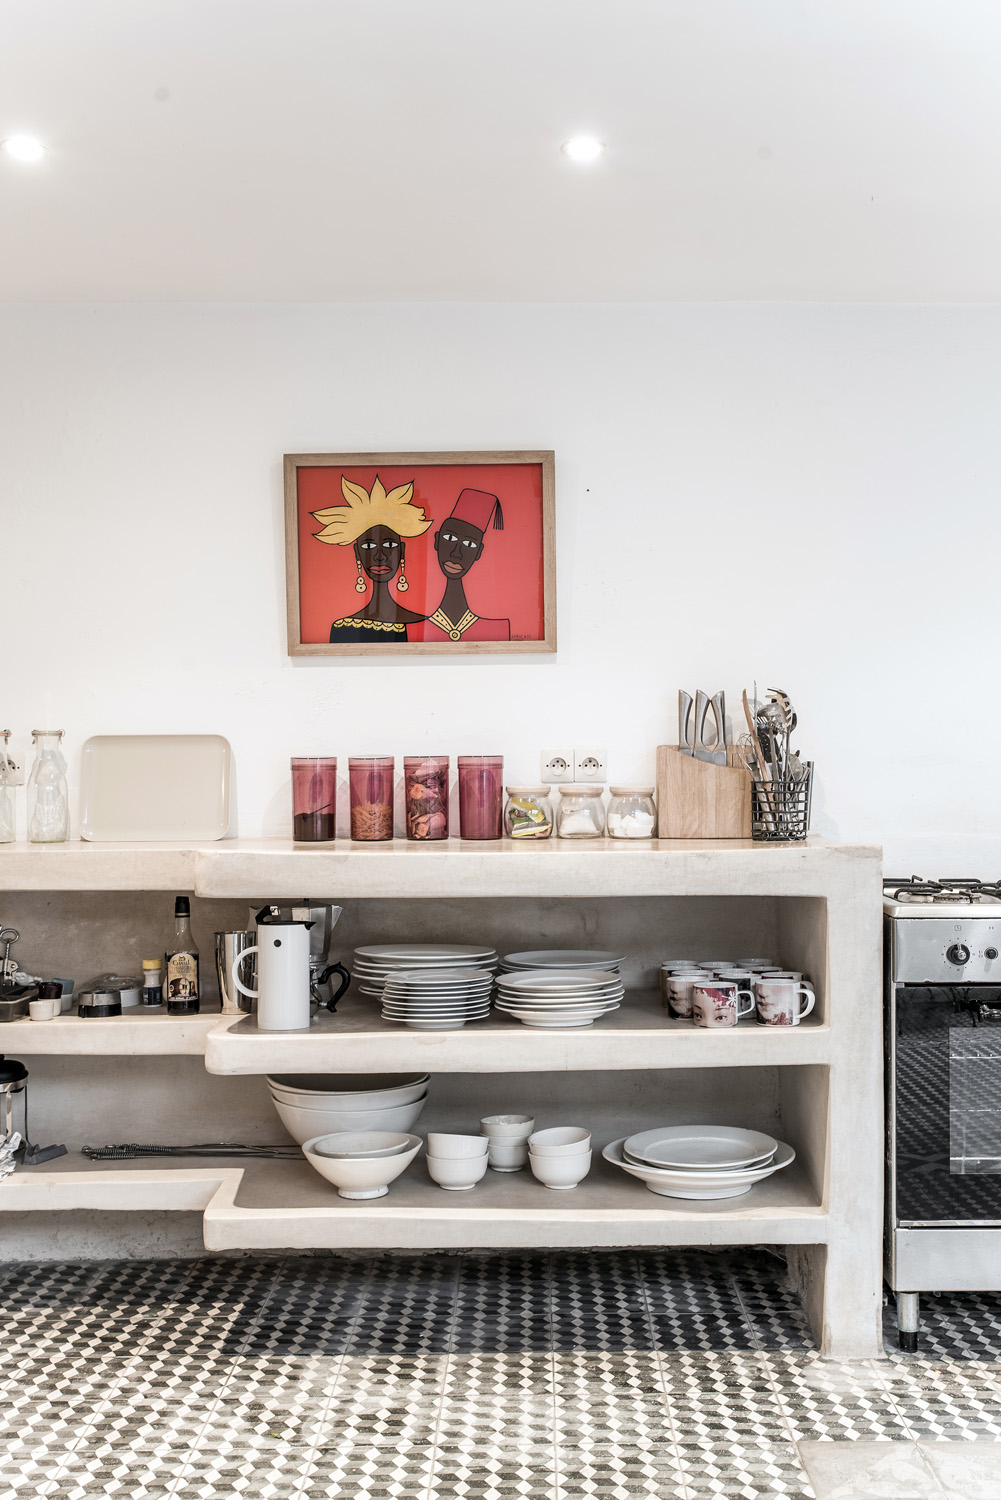 kitchen with bowls and painting